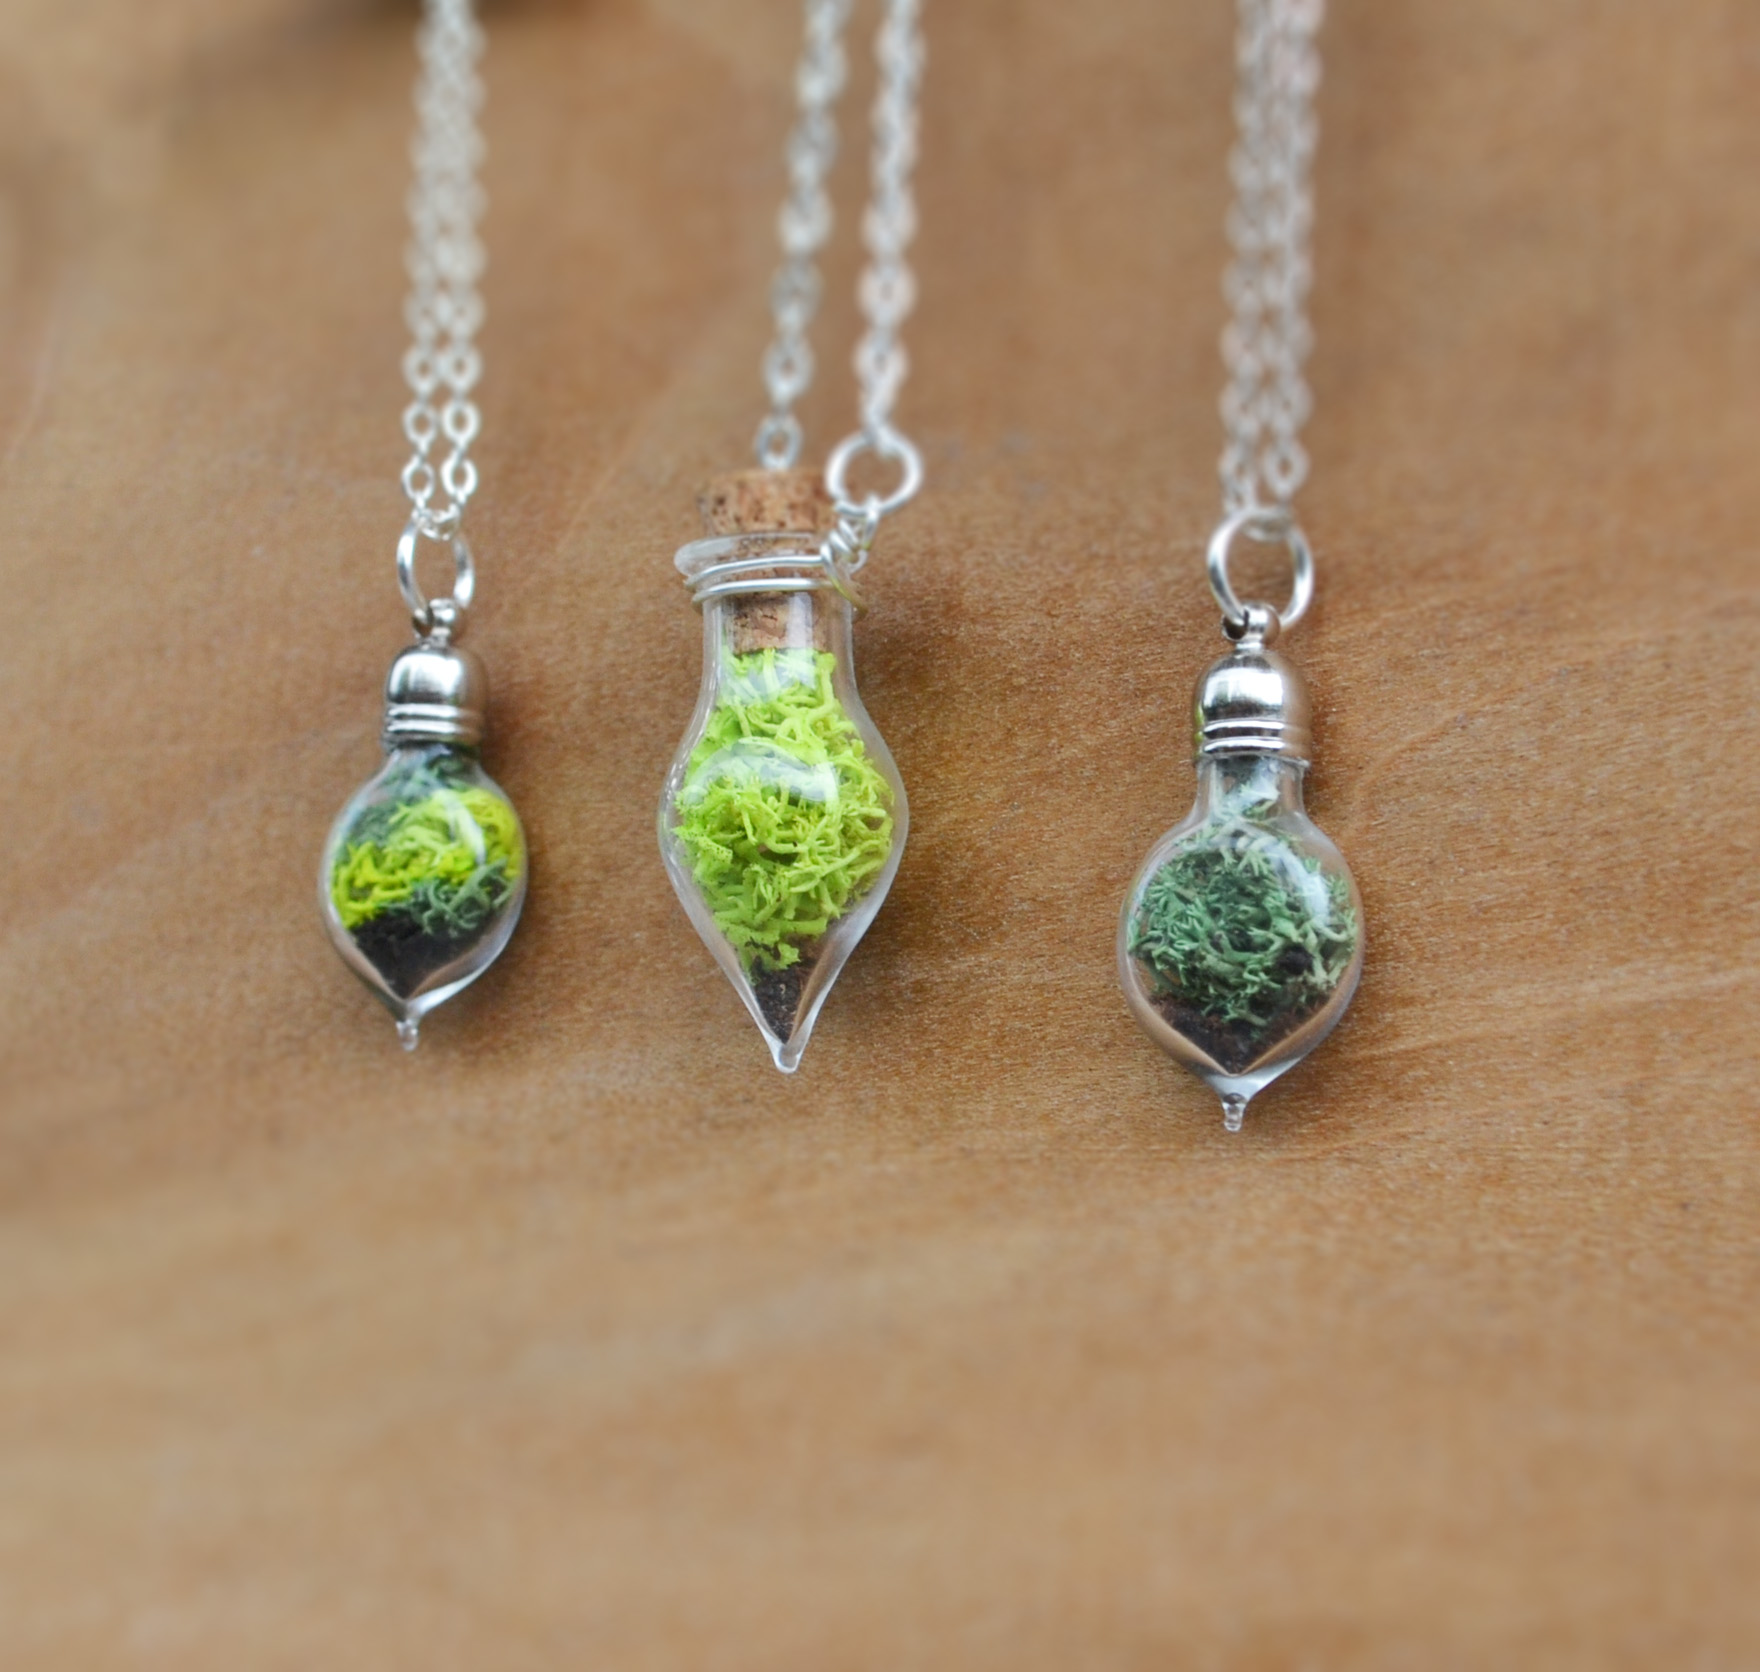 Moss Necklace Spring Jewelry Glass Terrarium Necklace Miniature